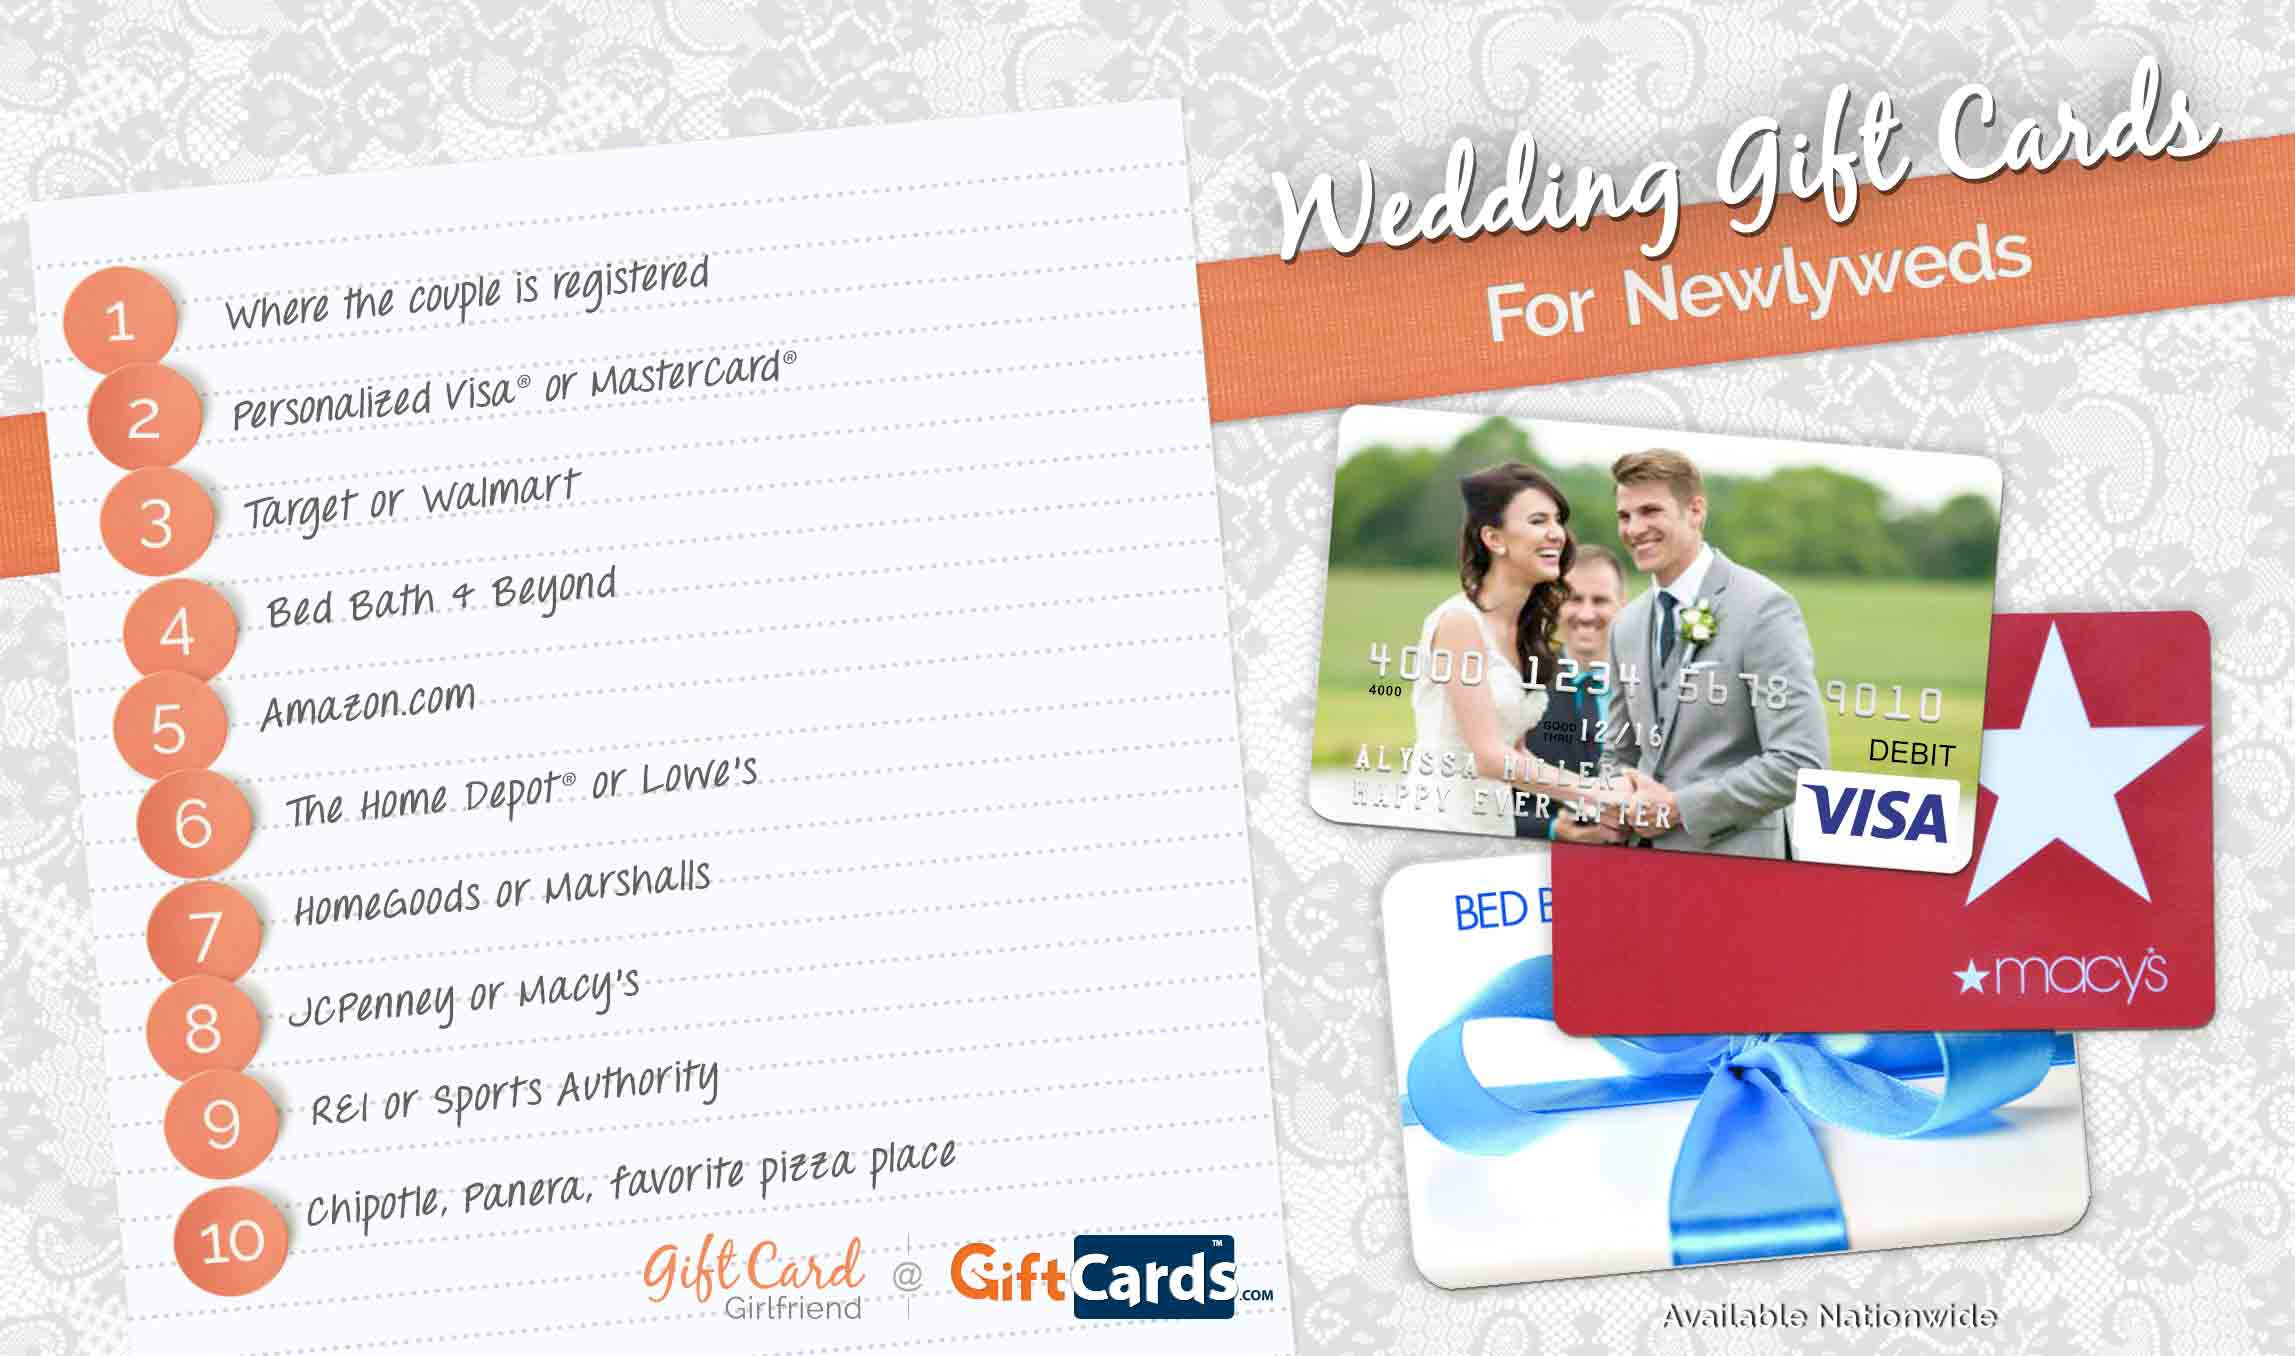 Best Wedding Gift Registry: Top 10 Wedding Gift Cards To Buy For Newlyweds